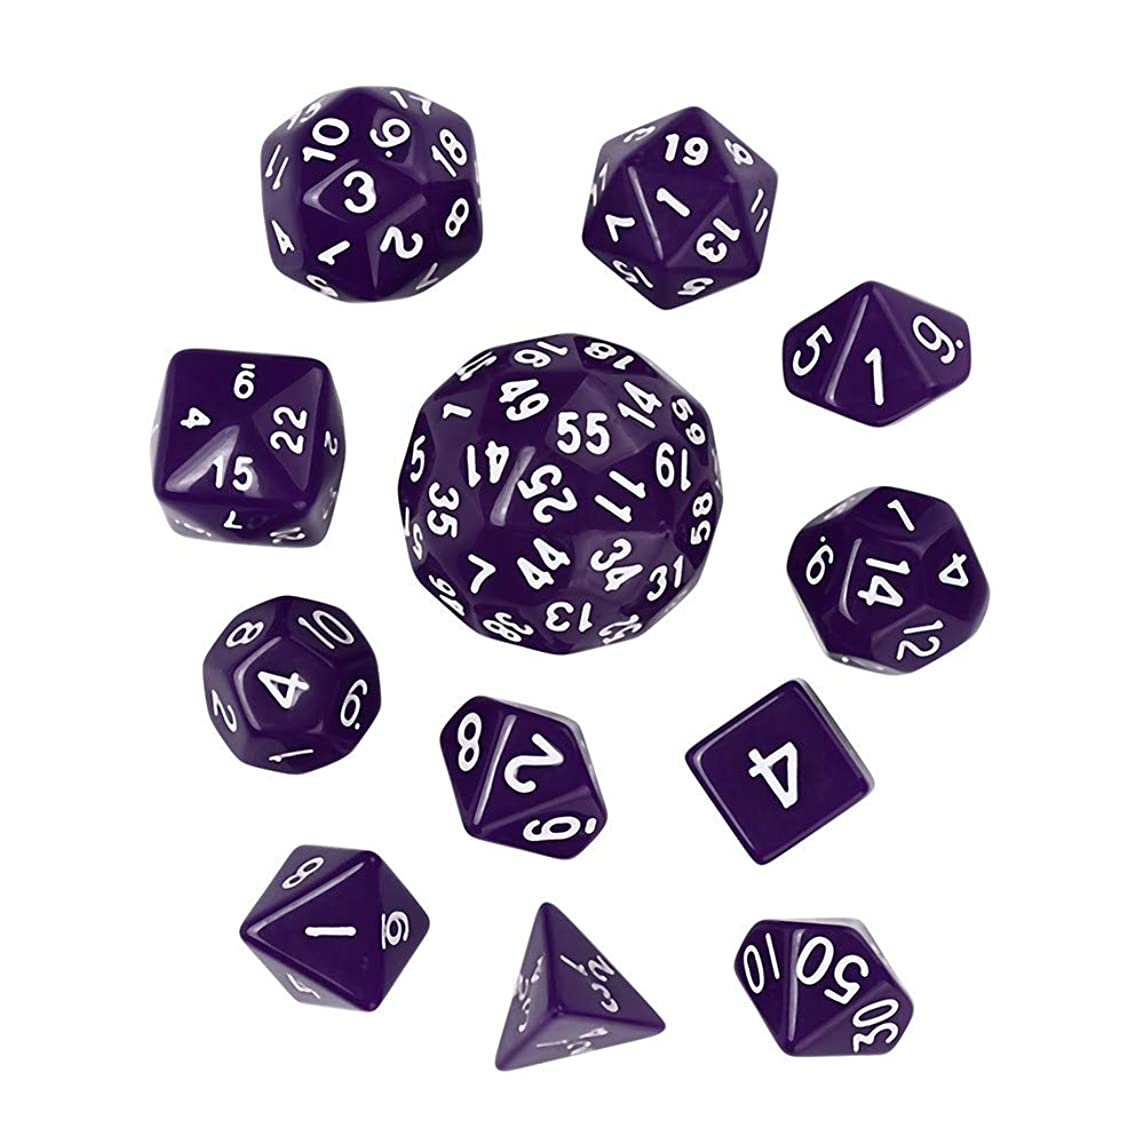 lotus.flower Game Dice, 12PCs Durable Resin Polyhedral Dice Set - Fun Role Playing Gaming Props for Dungeons and Dragons RPG MTG Table Games